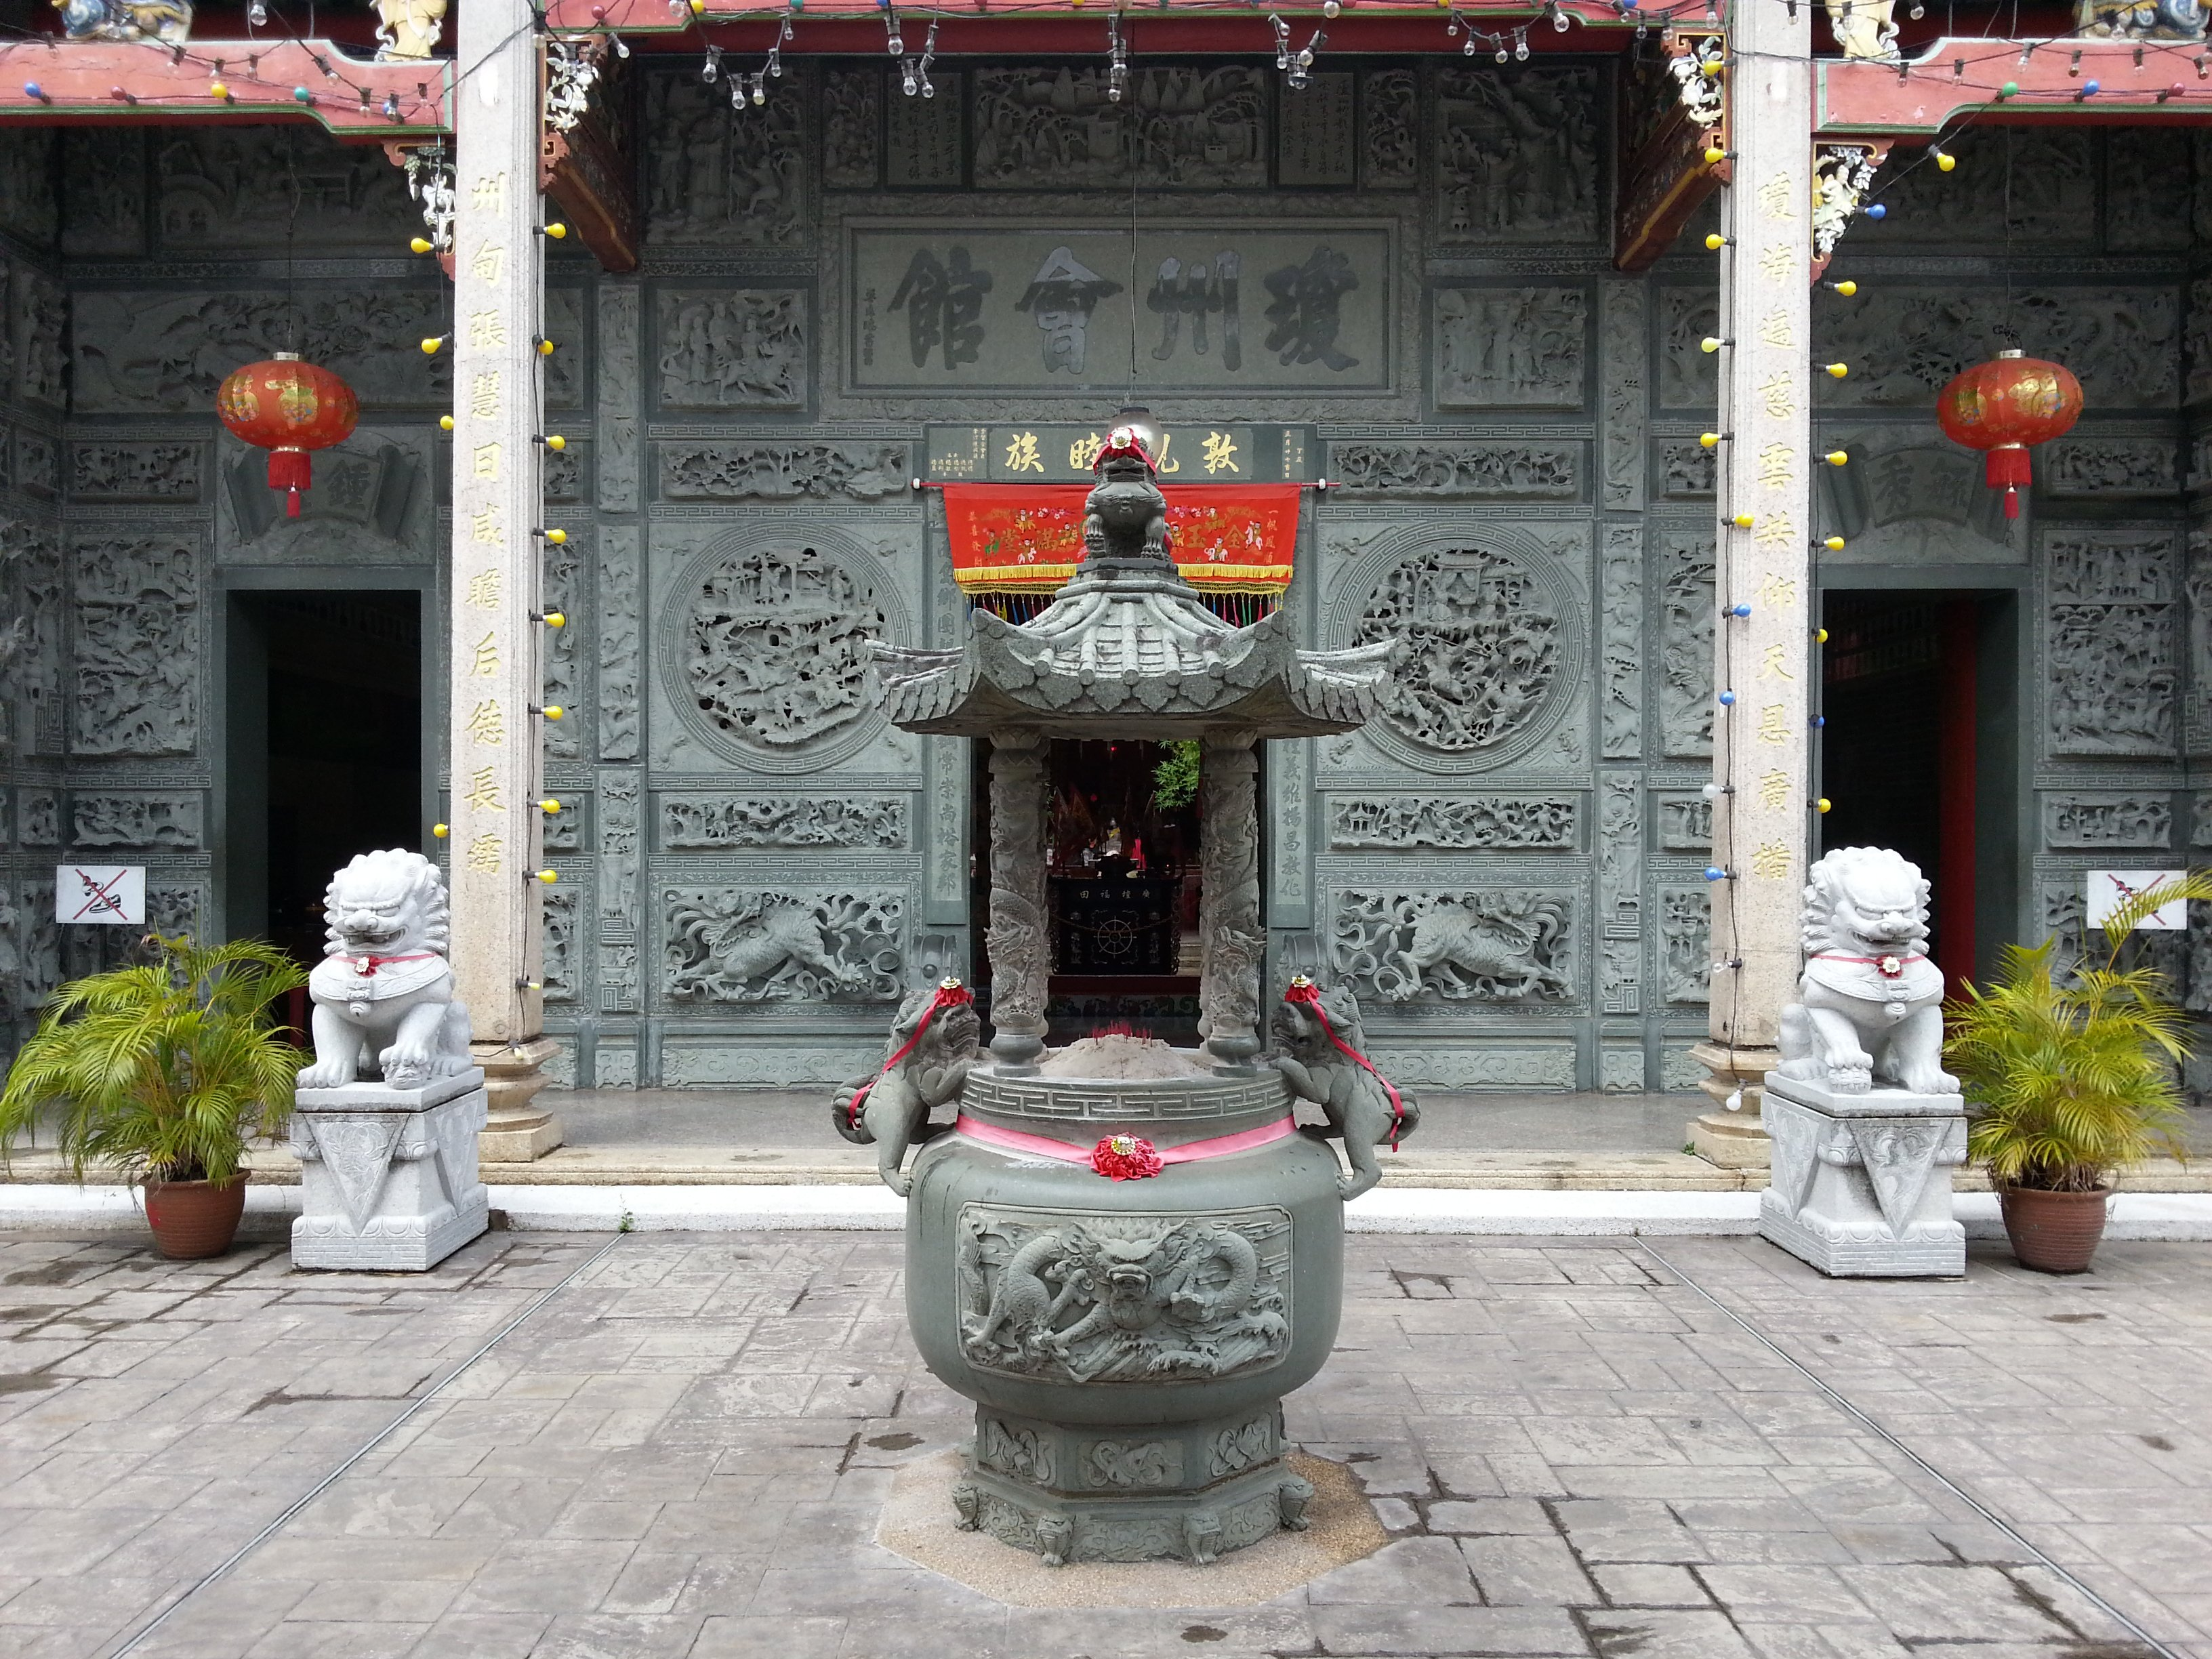 Front wall of the Hainan Temple